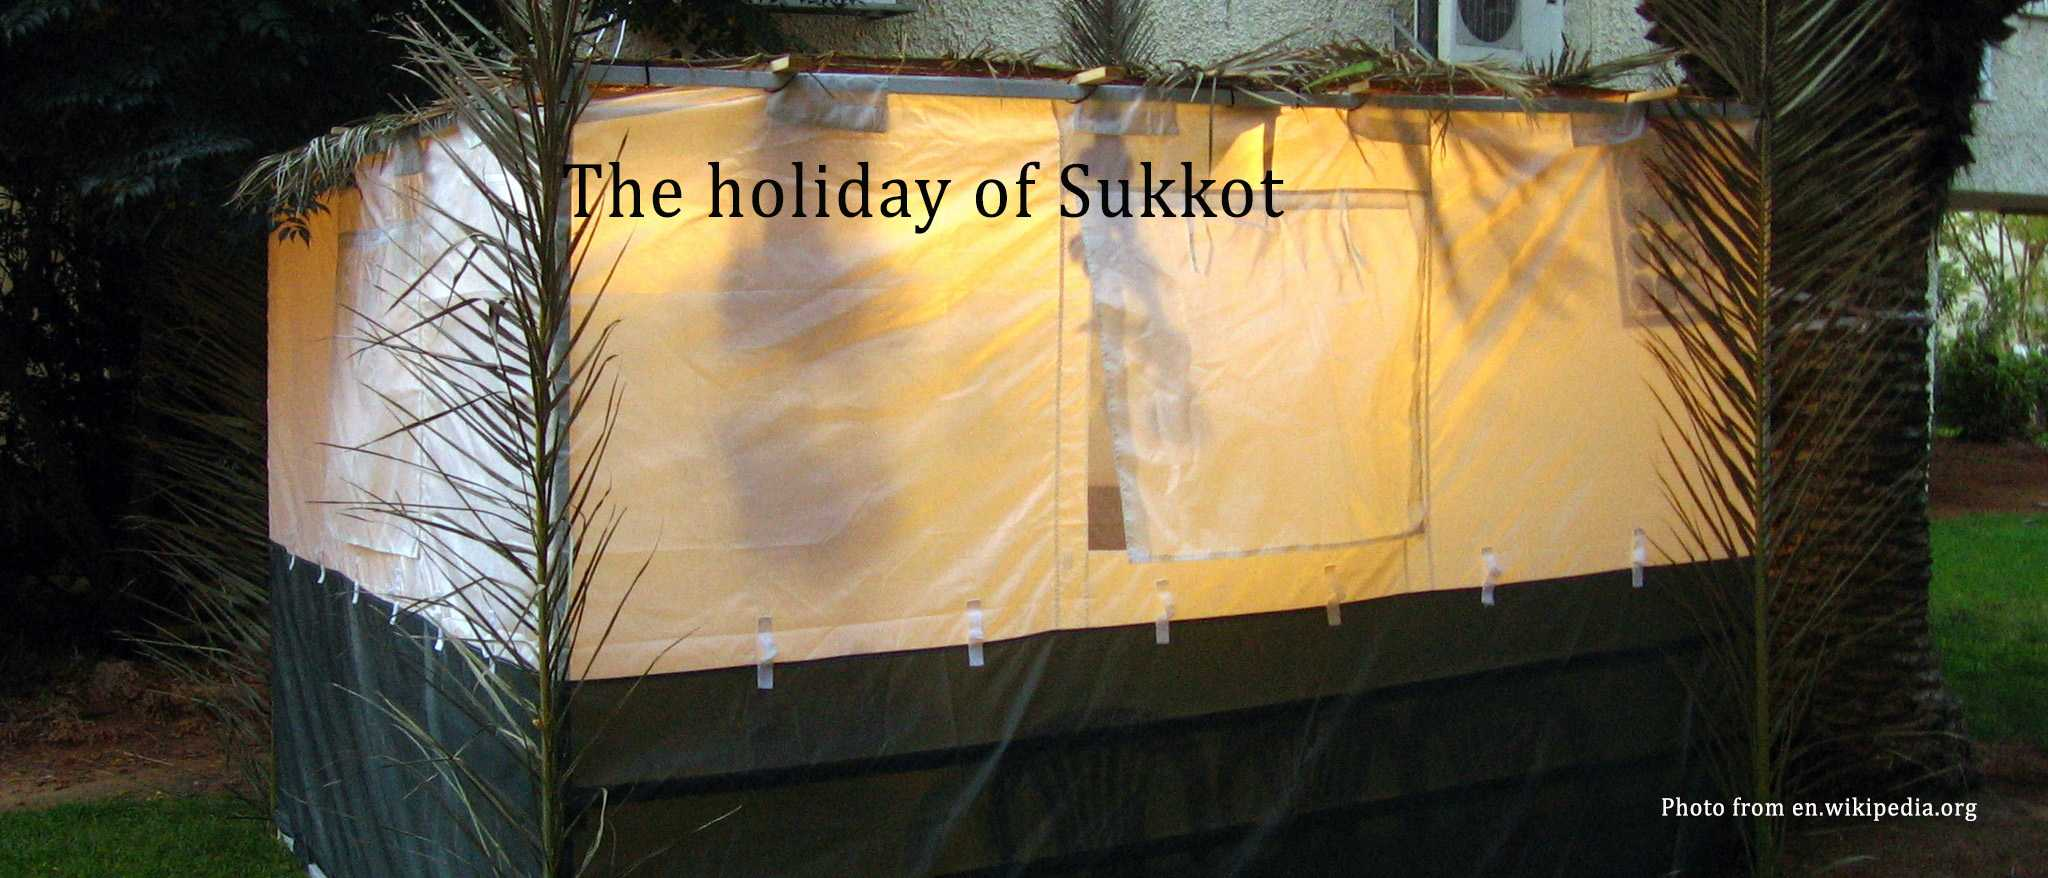 The holiday of Sukkot